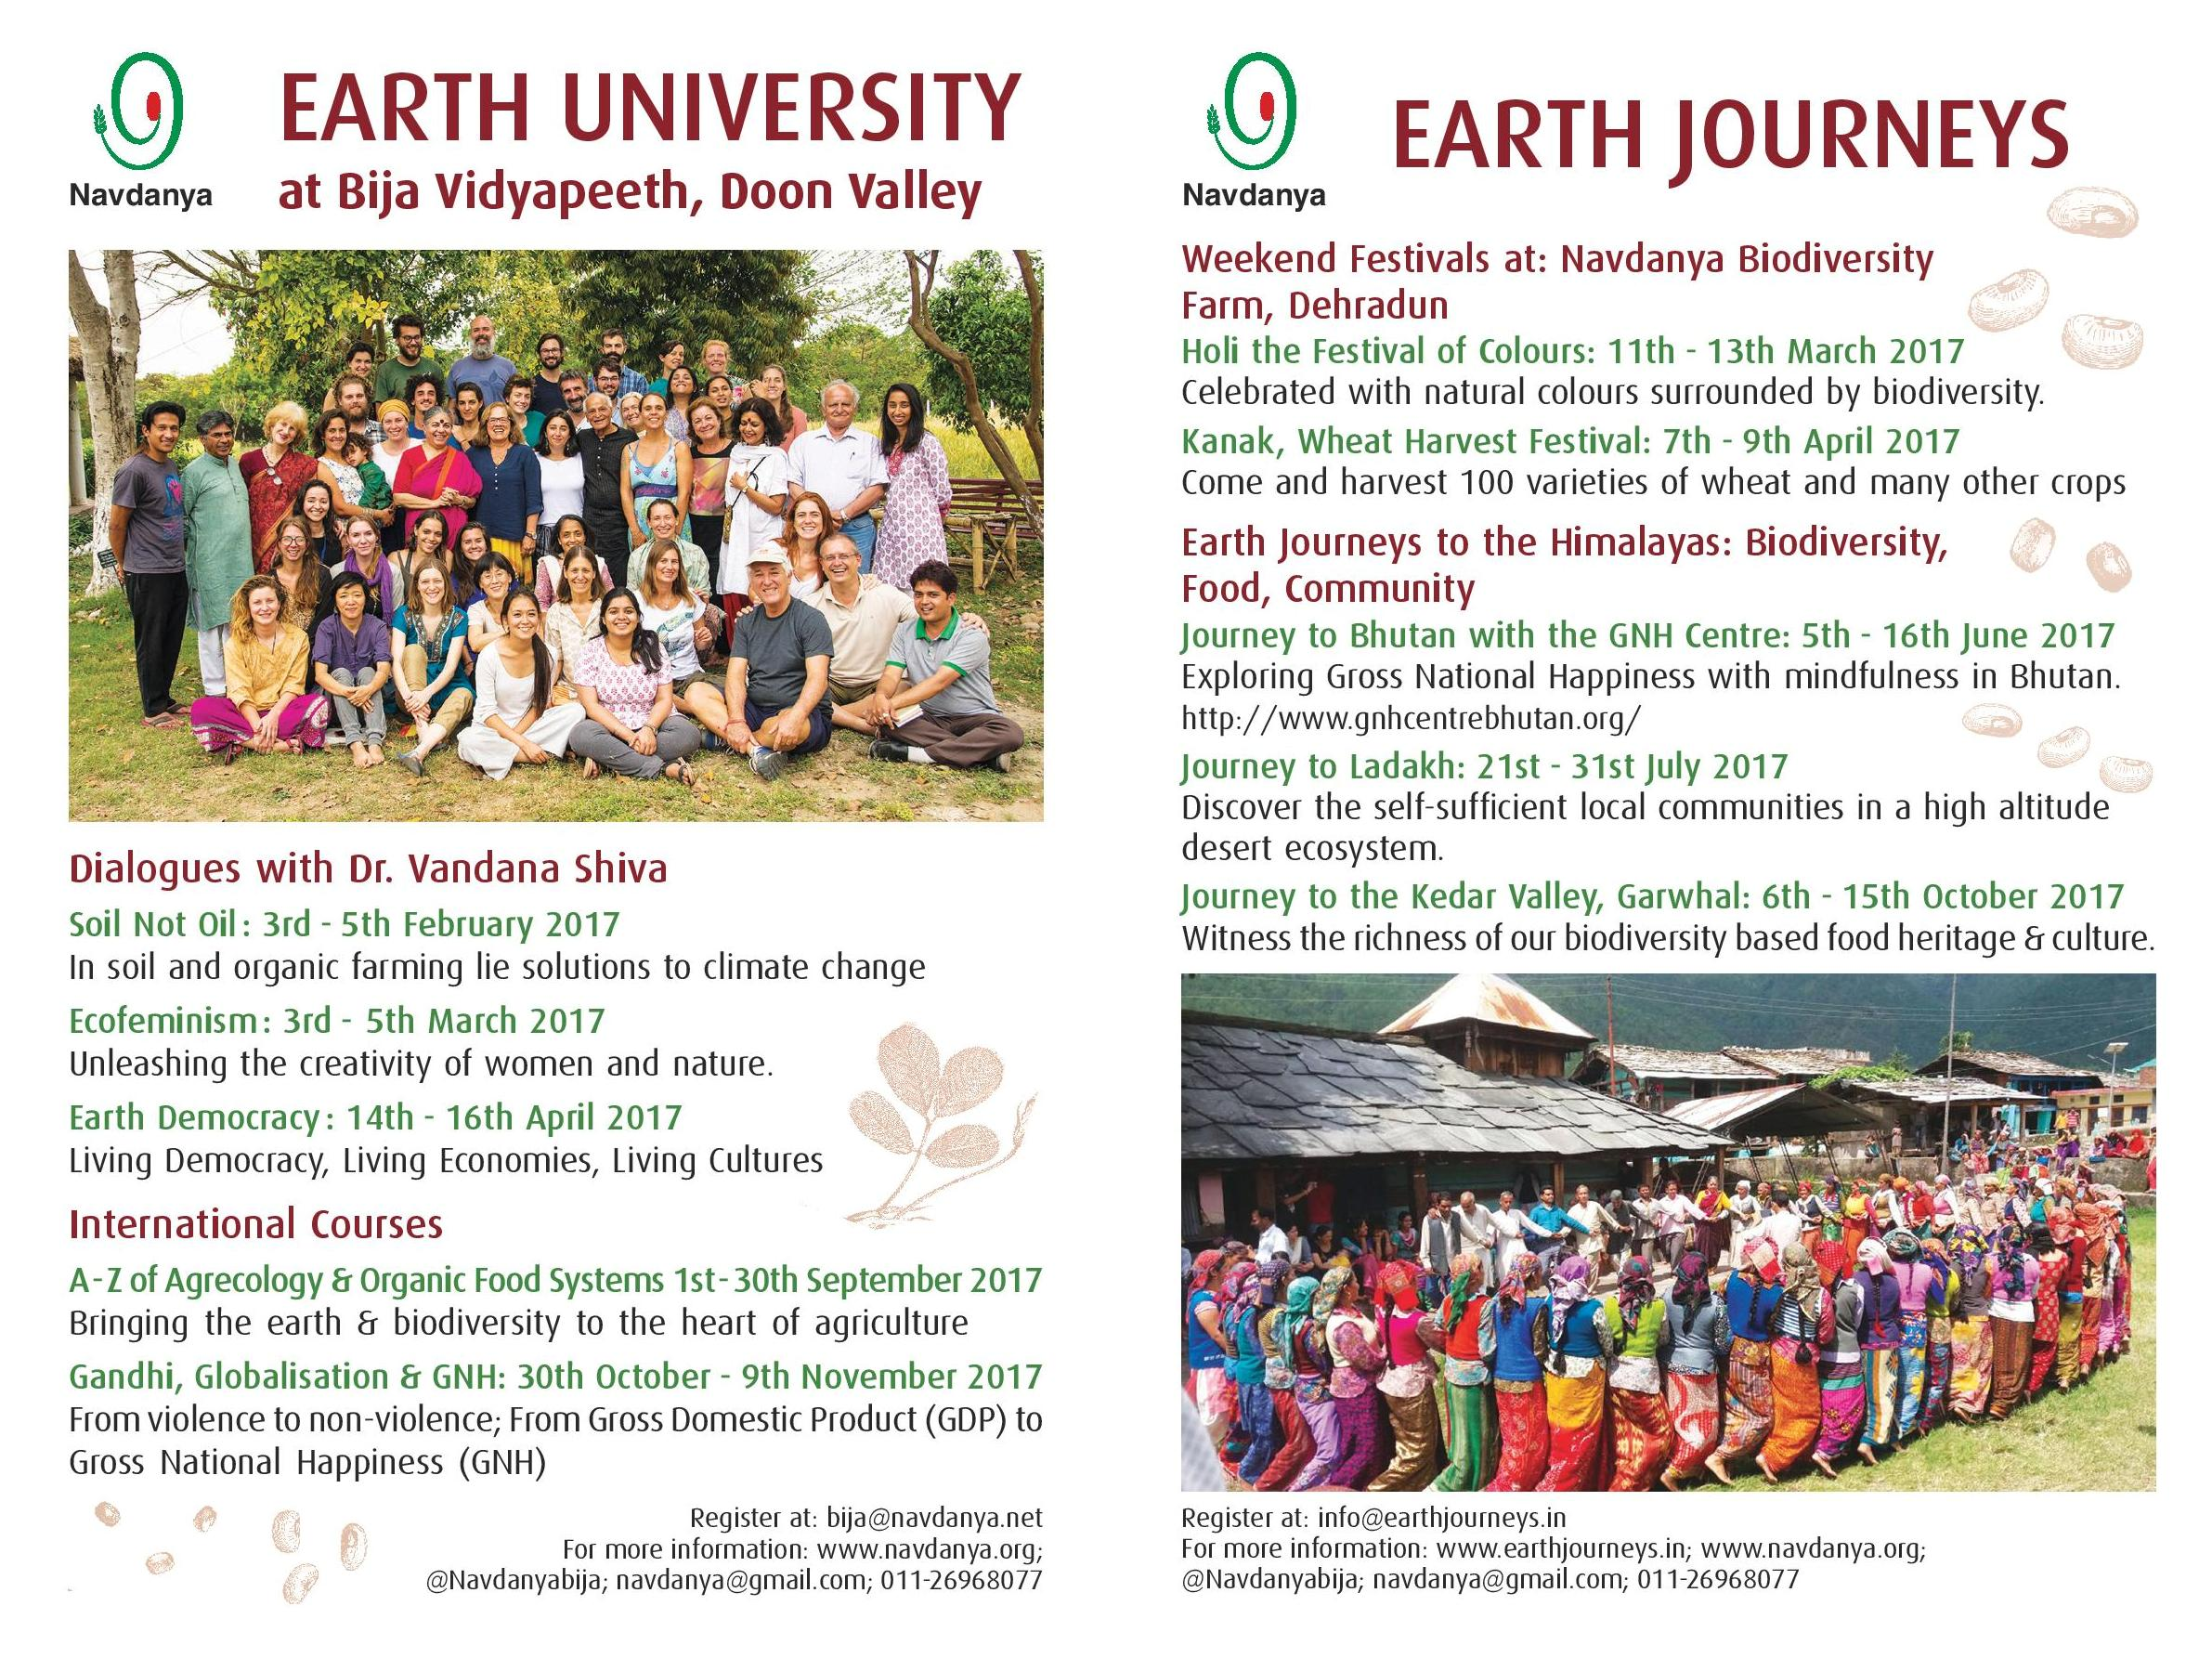 revised-earth-university-card_15-9-2016-page-001